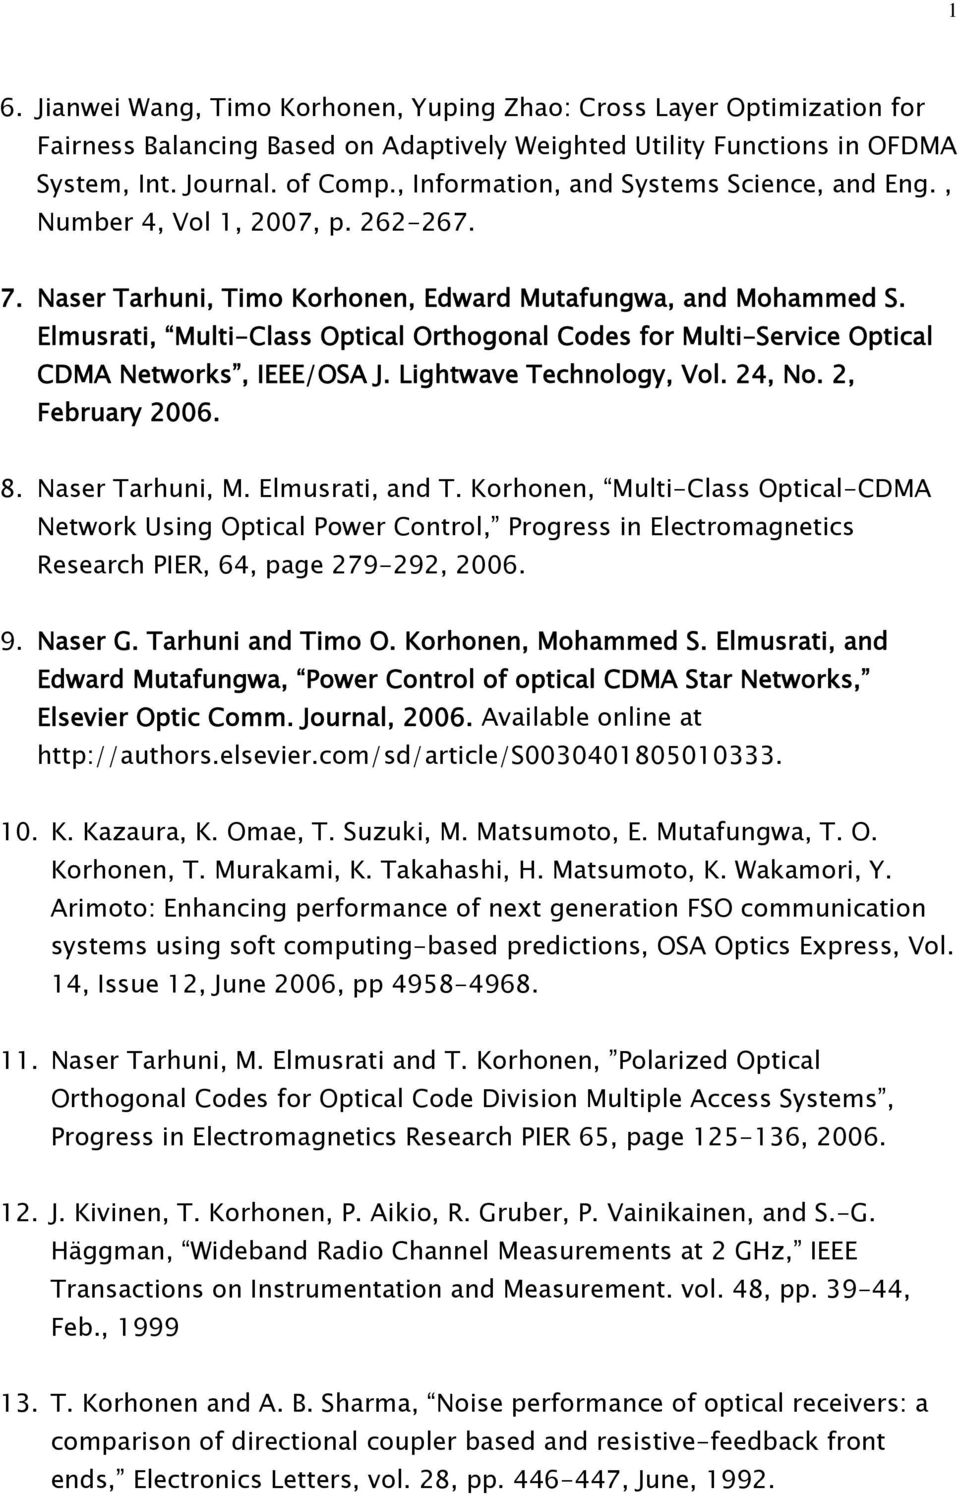 Elmusrati, Multi-Class Optical Orthogonal Codes for Multi-Service Optical CDMA Networks, IEEE/OSA J. Lightwave Technology, Vol. 24, No. 2, February 2006. 8. Naser Tarhuni, M. Elmusrati, and T.